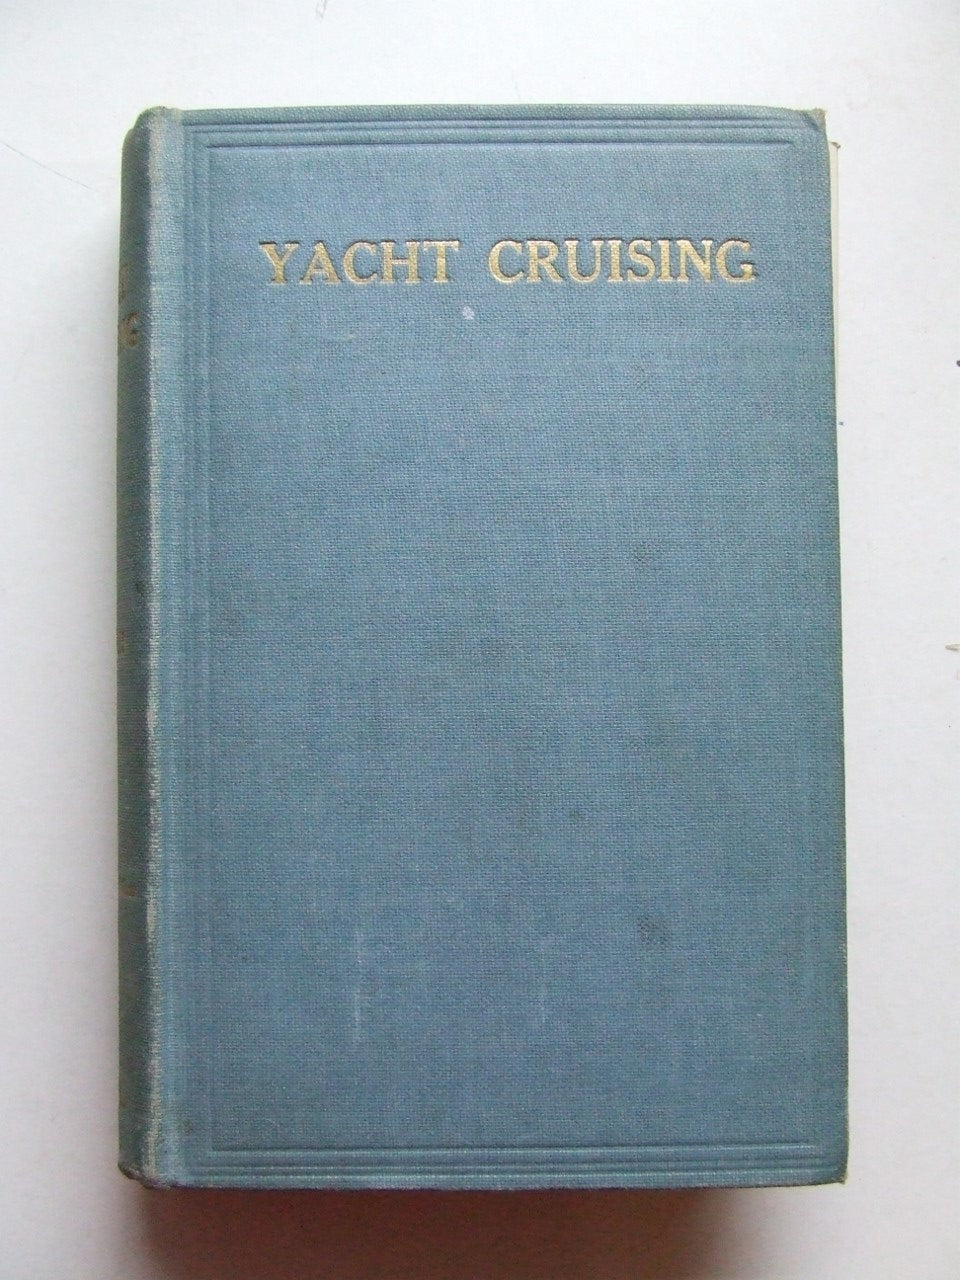 Yacht Cruising.  2nd edition.  William Bergius's copy